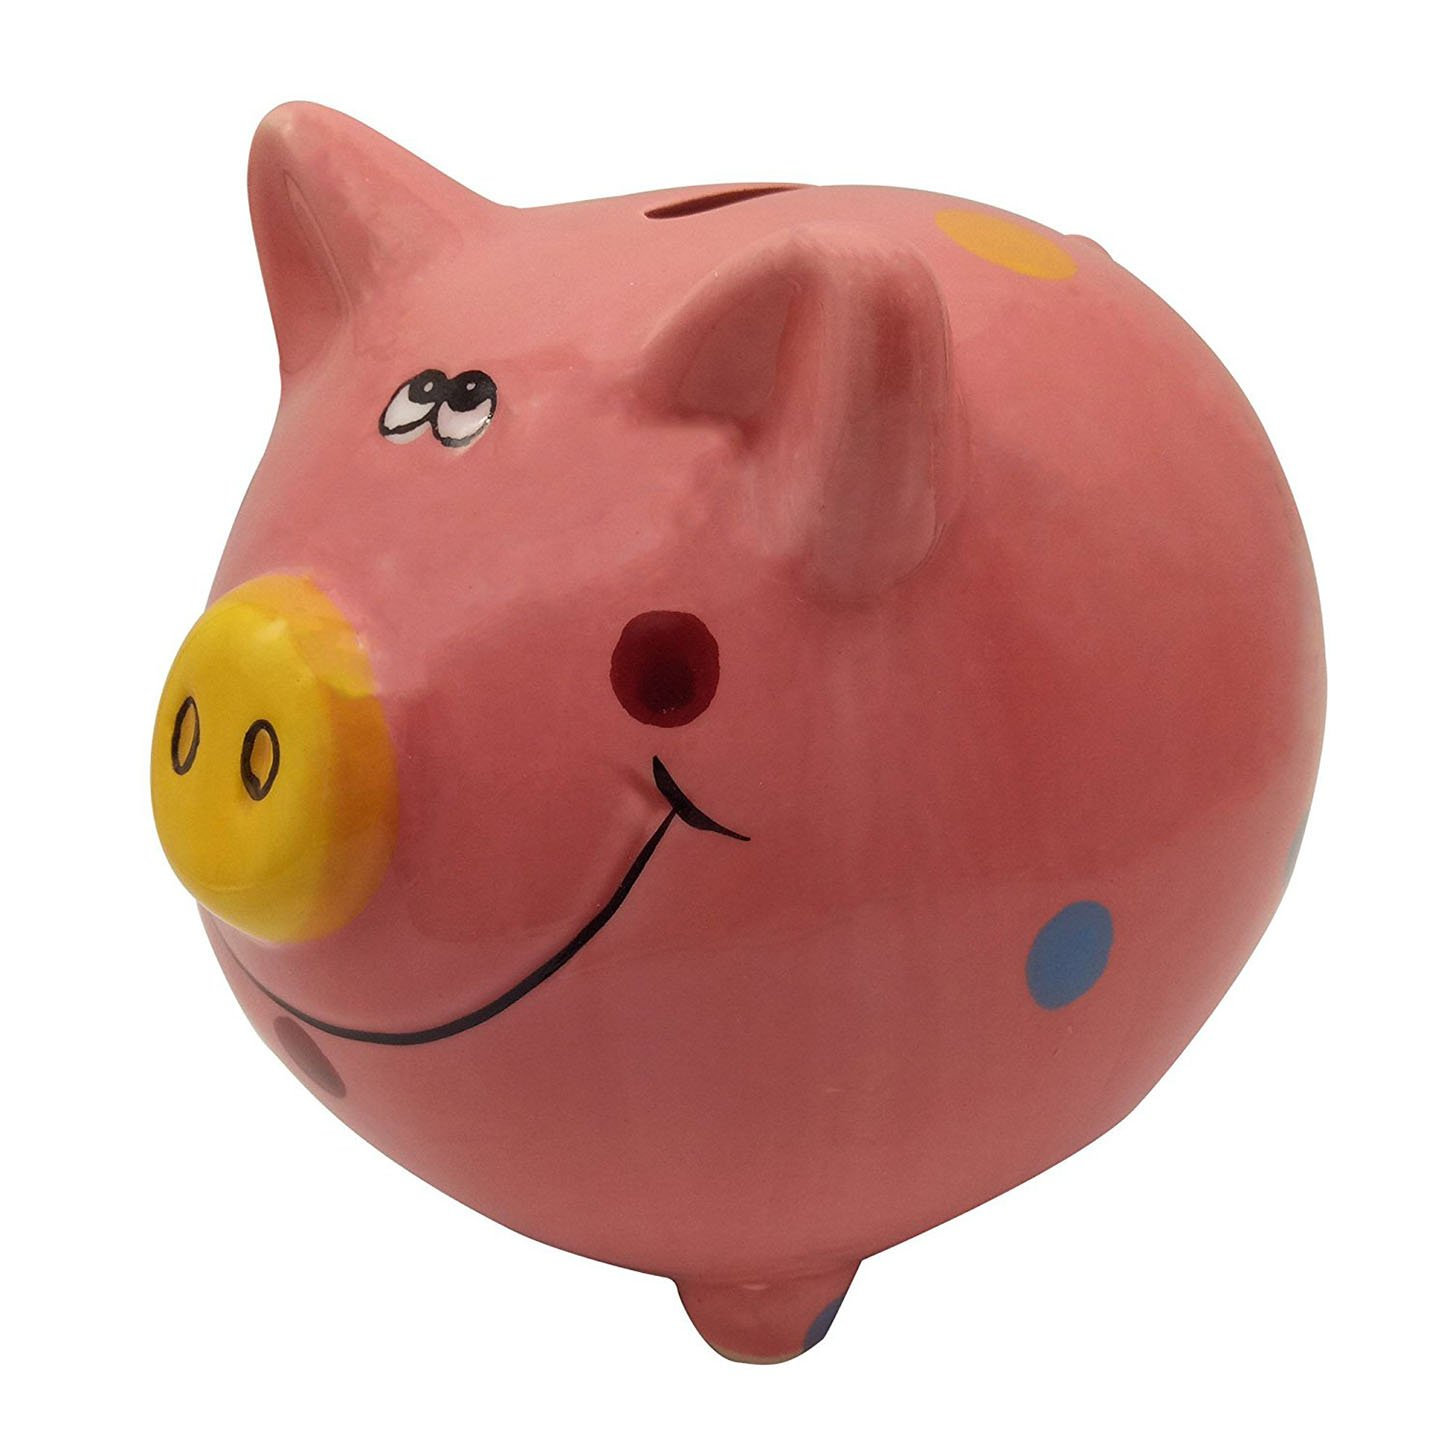 ZCHING Cute Ceramic Pig Piggy Bank Personalized Money Saving Bank for Kids Girls Nursery Gift Decor (Blue)